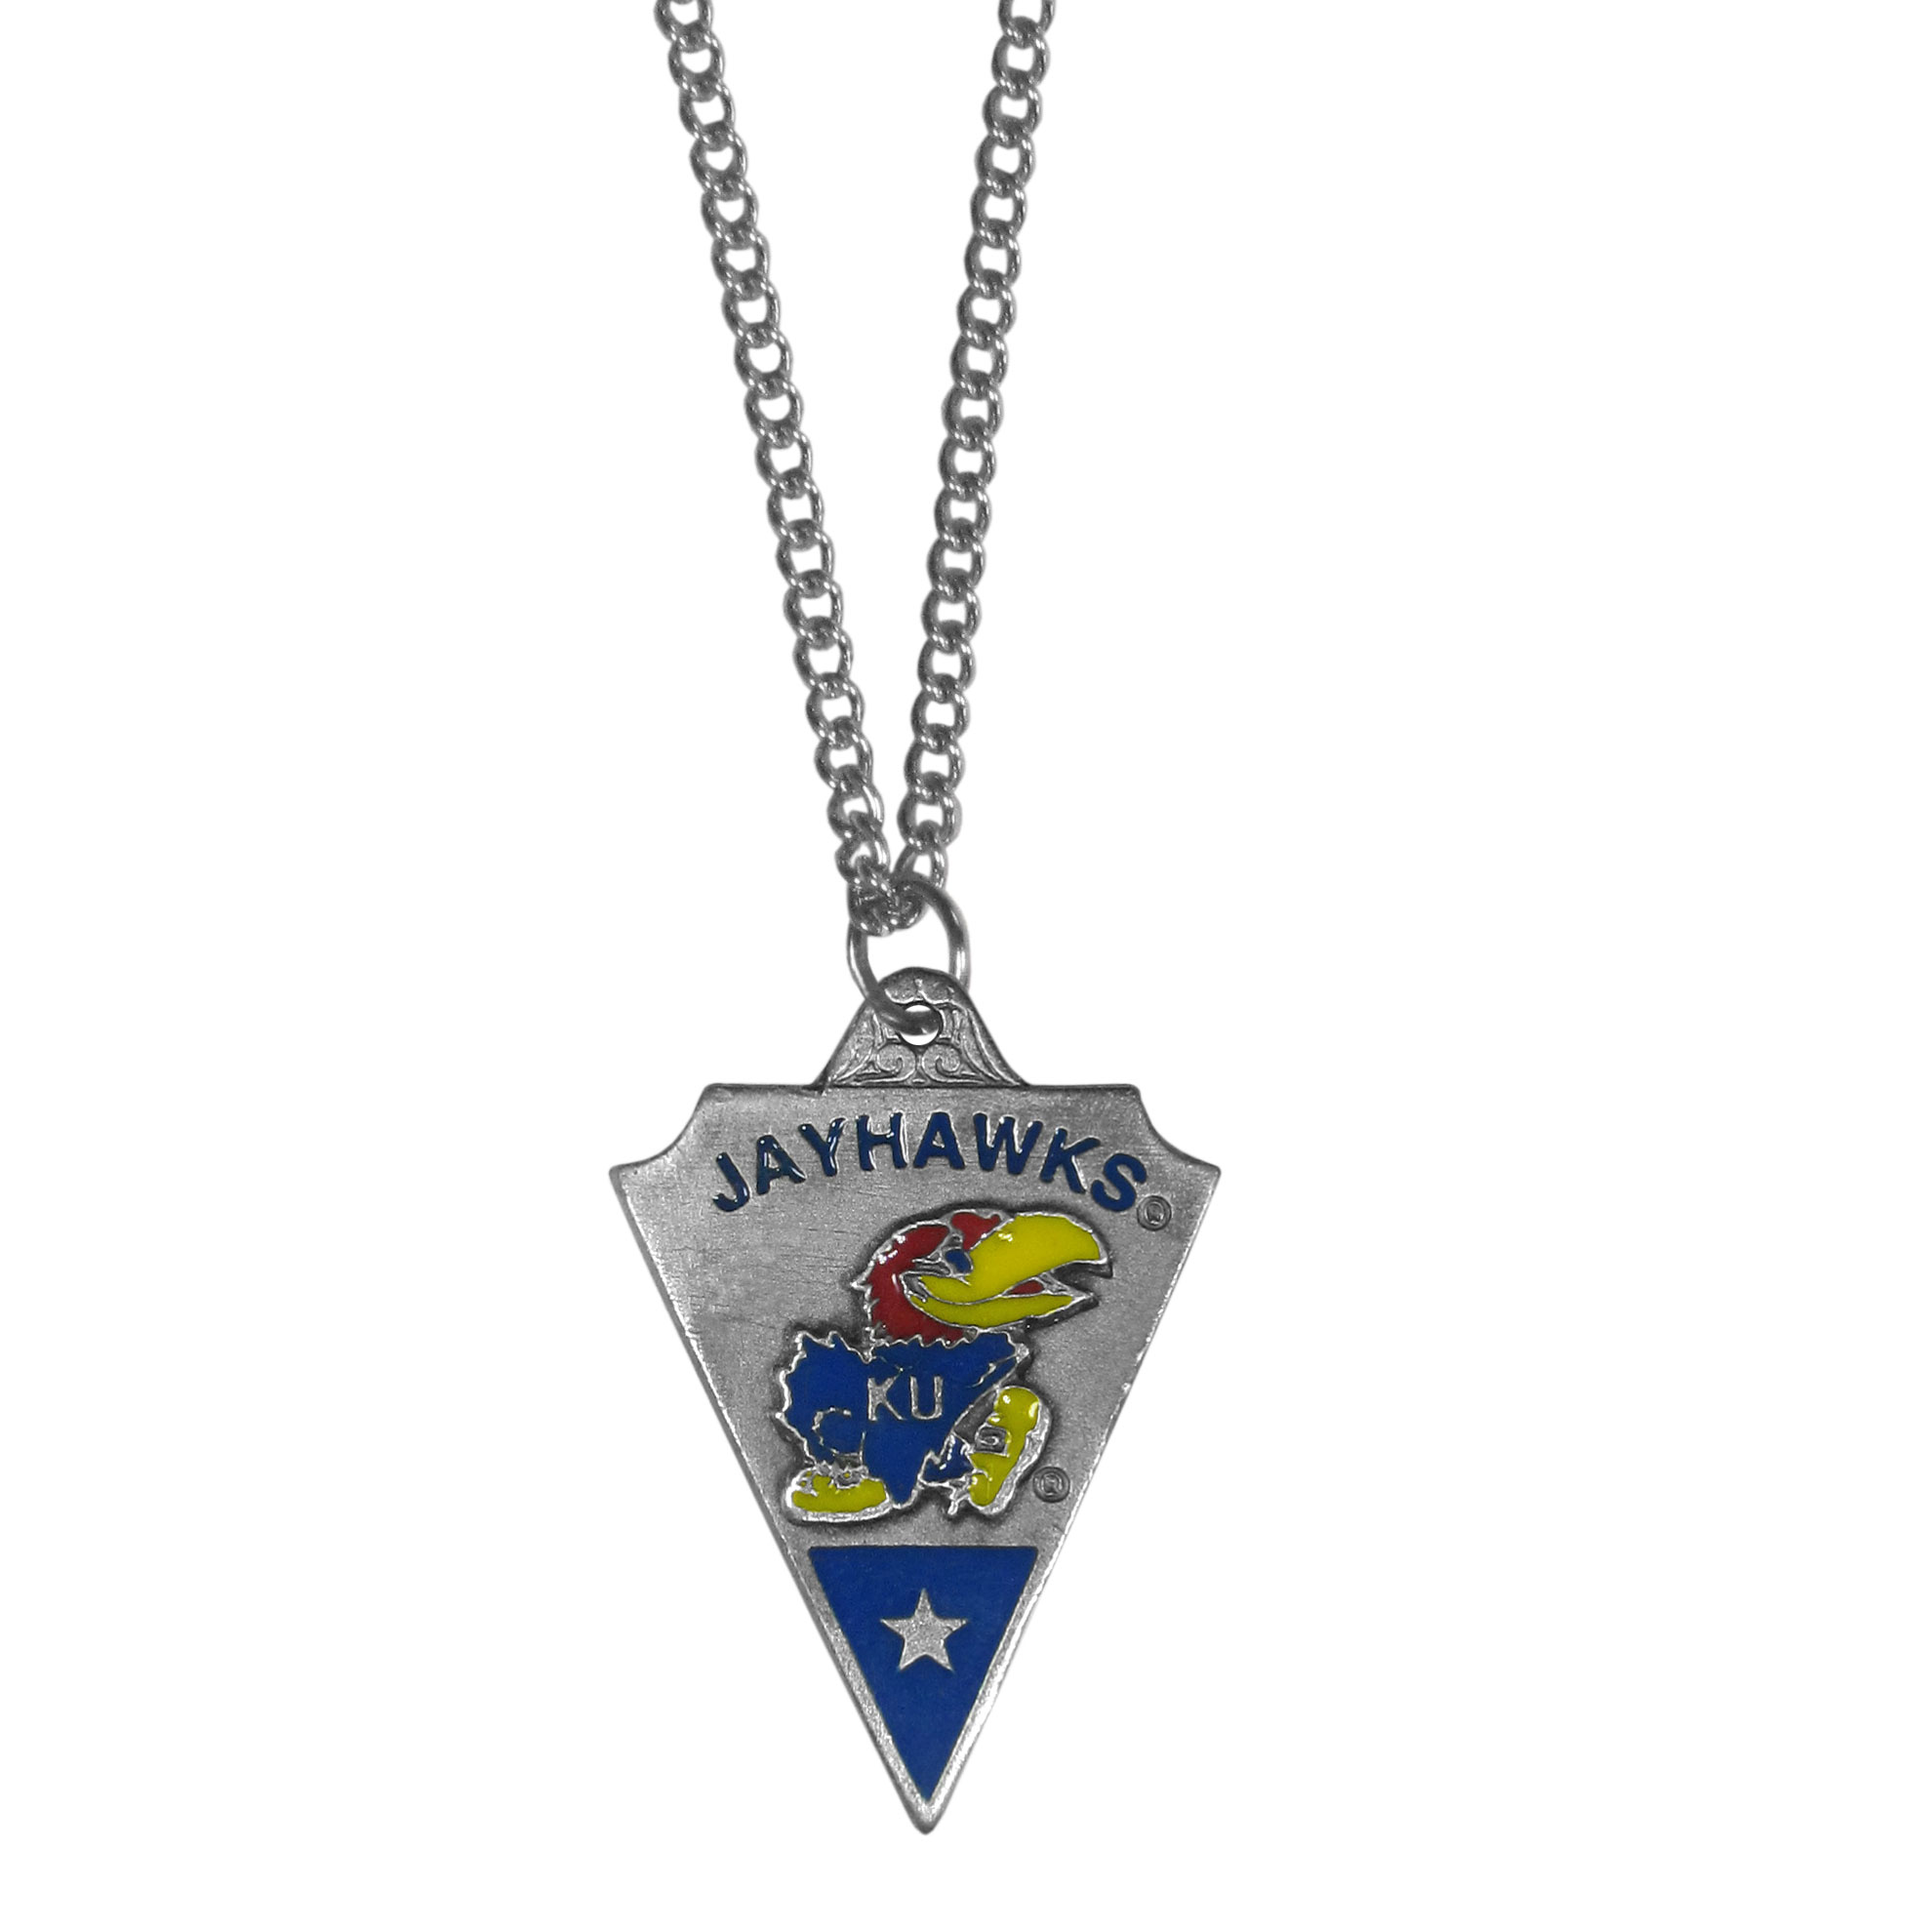 College Chain Necklace & Pendant - Kansas Jayhawks - Kansas Jayhawks college chain necklace with enameled pewter team pendant. College Chain Necklace & Pendant - Kansas Jayhawks. Check out our entire line of  jewelry! Thank you for shopping with CrazedOutSports.com